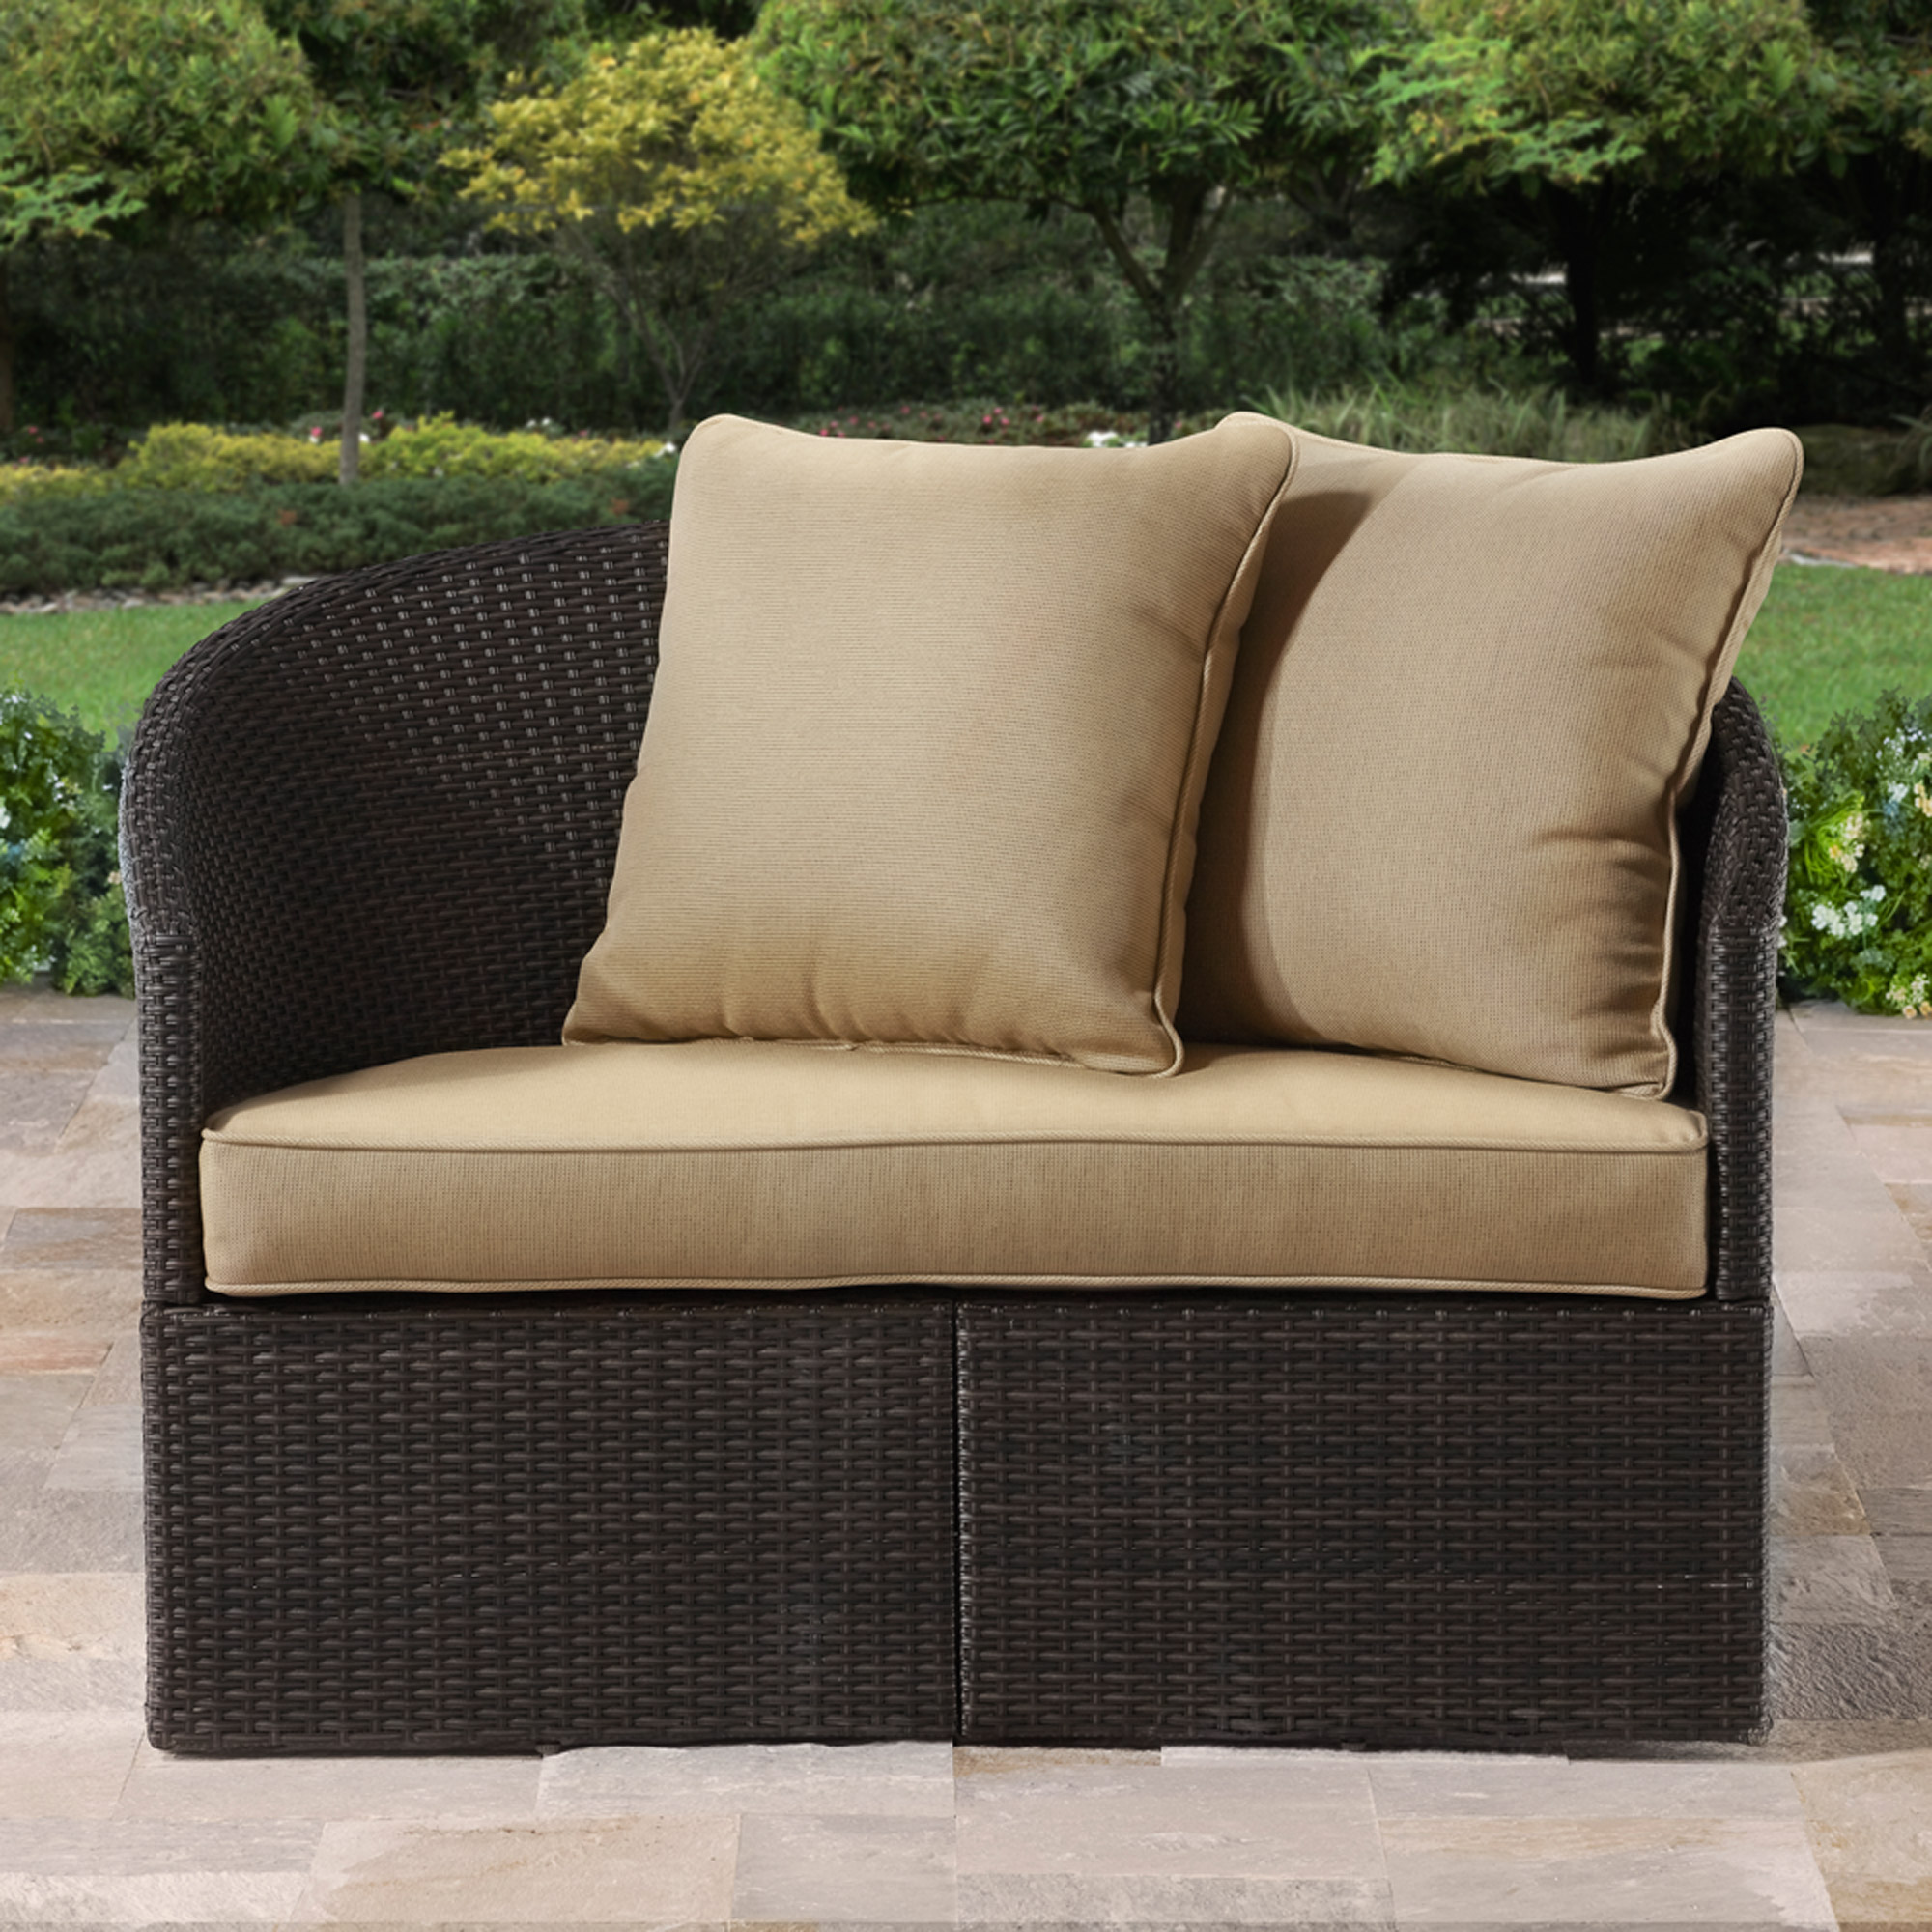 Cushioned Brown Resin Wicker Love Seat Curved Outdoor Patio Home